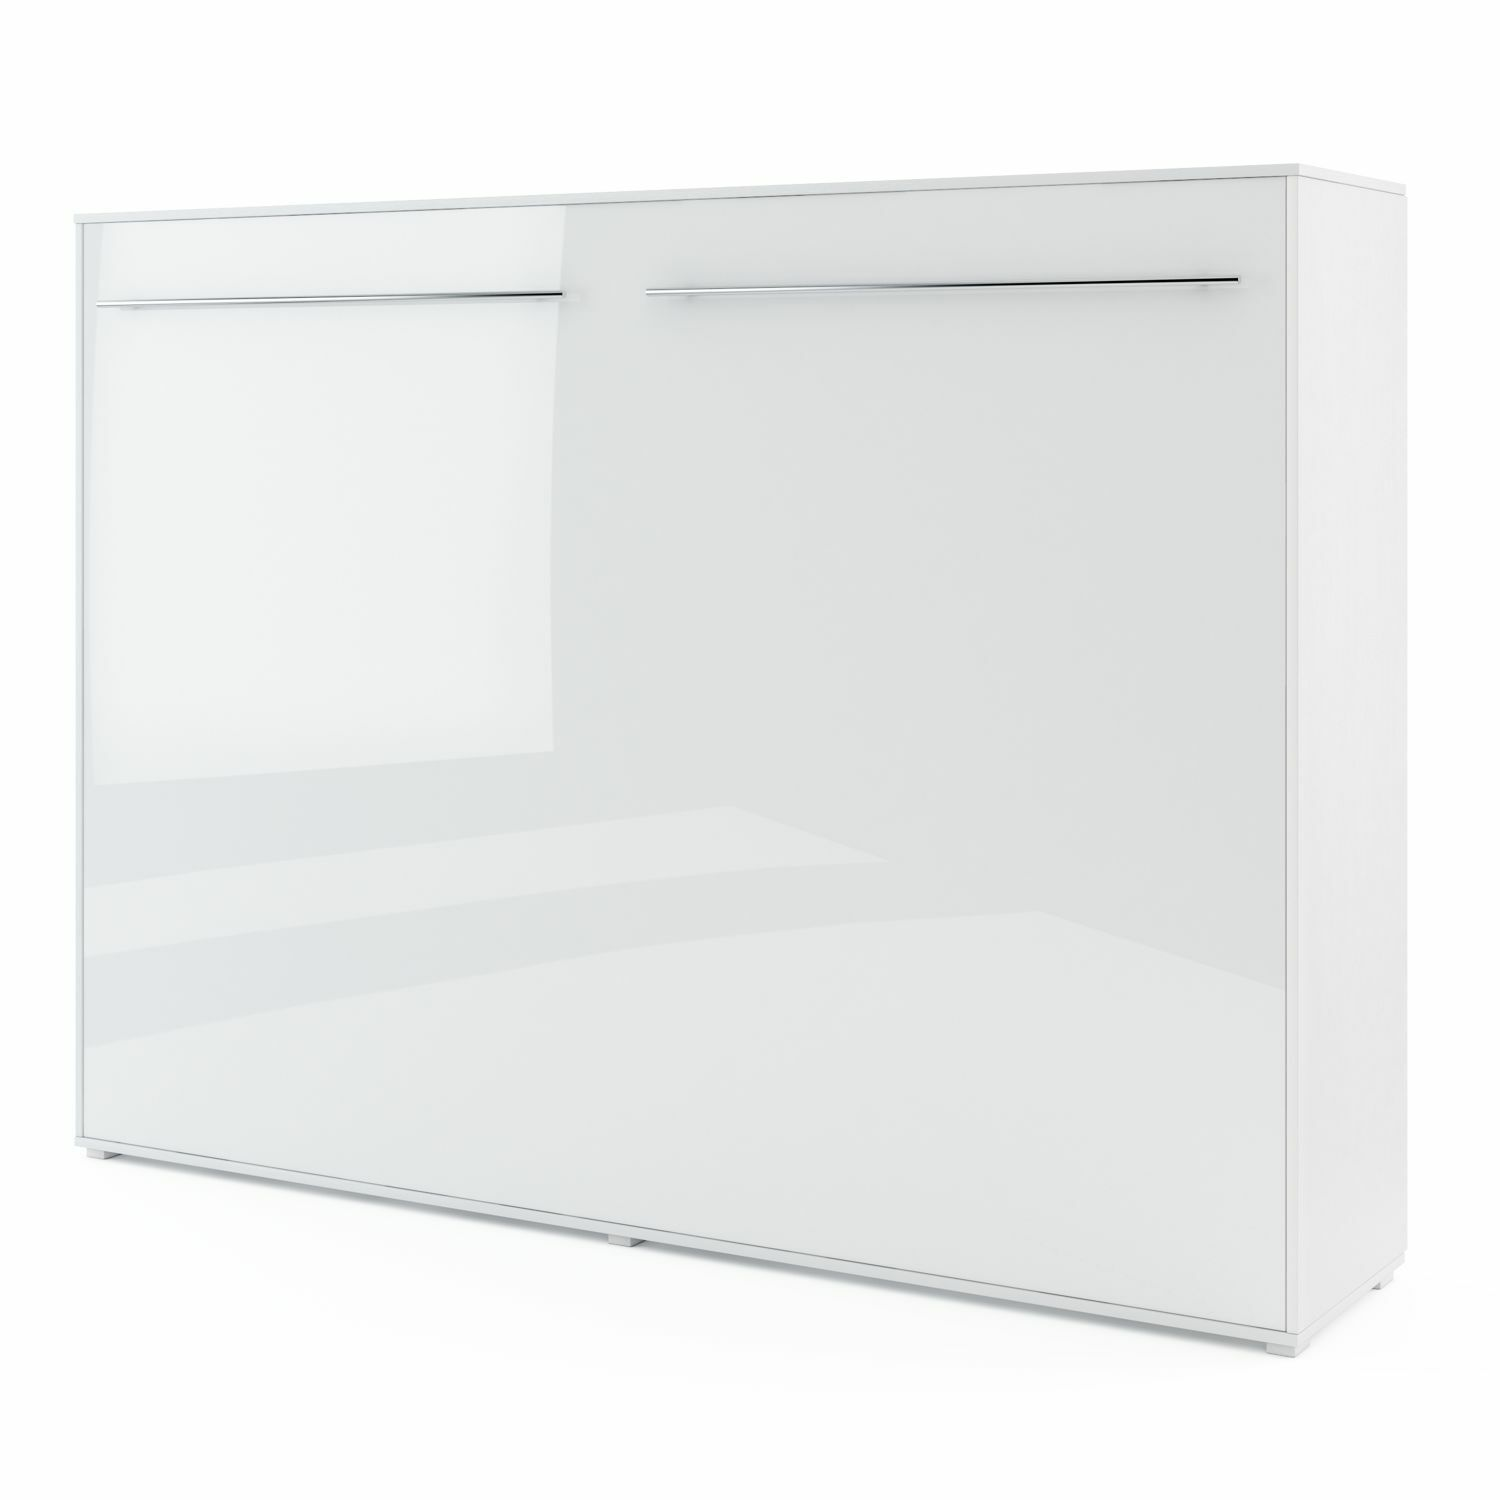 Van Wyck Murphy Bed with Mattress Size: Full XL, Color: White Gloss